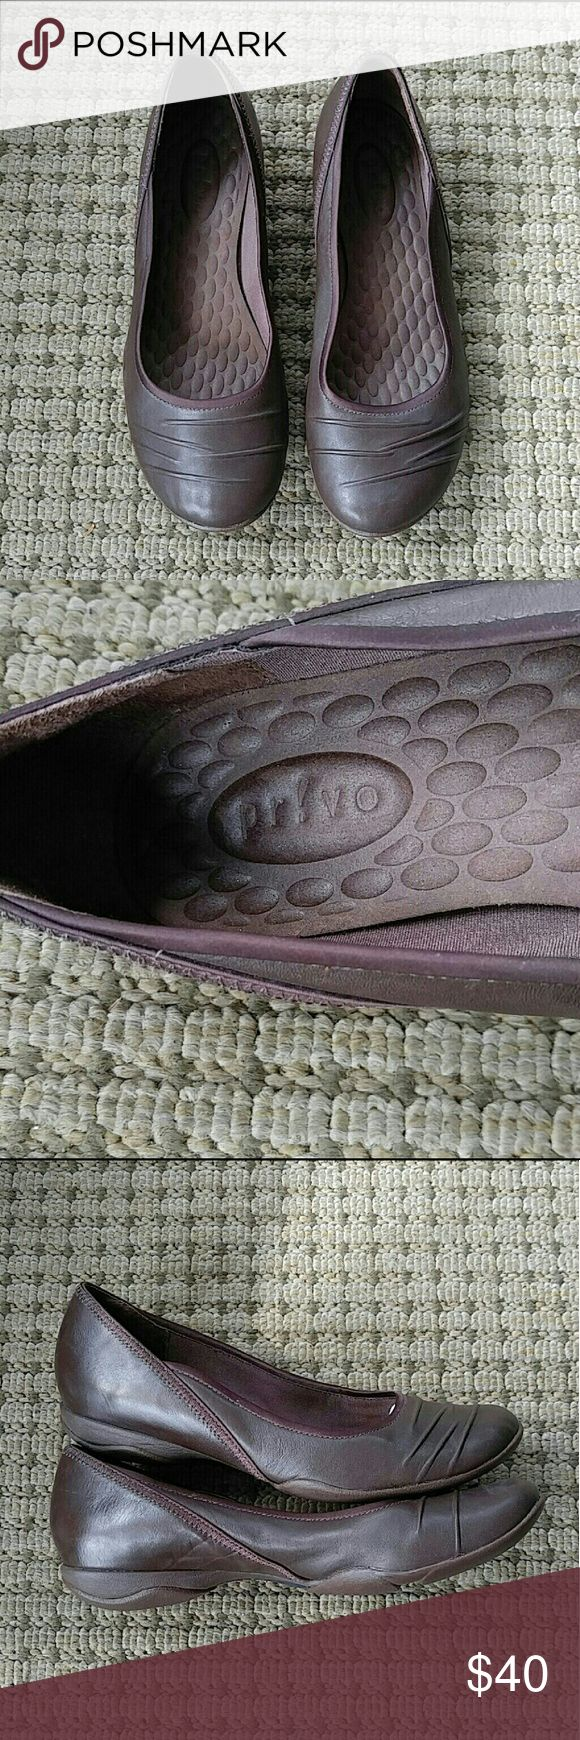 Privo by Clark's Leather Flats These flats are so comfortable and they have 100% leather uppers! They are in excellent pre-loved condition and have only been worn a few times! Thanks for looking! :) Privo by Clark's Shoes Flats & Loafers